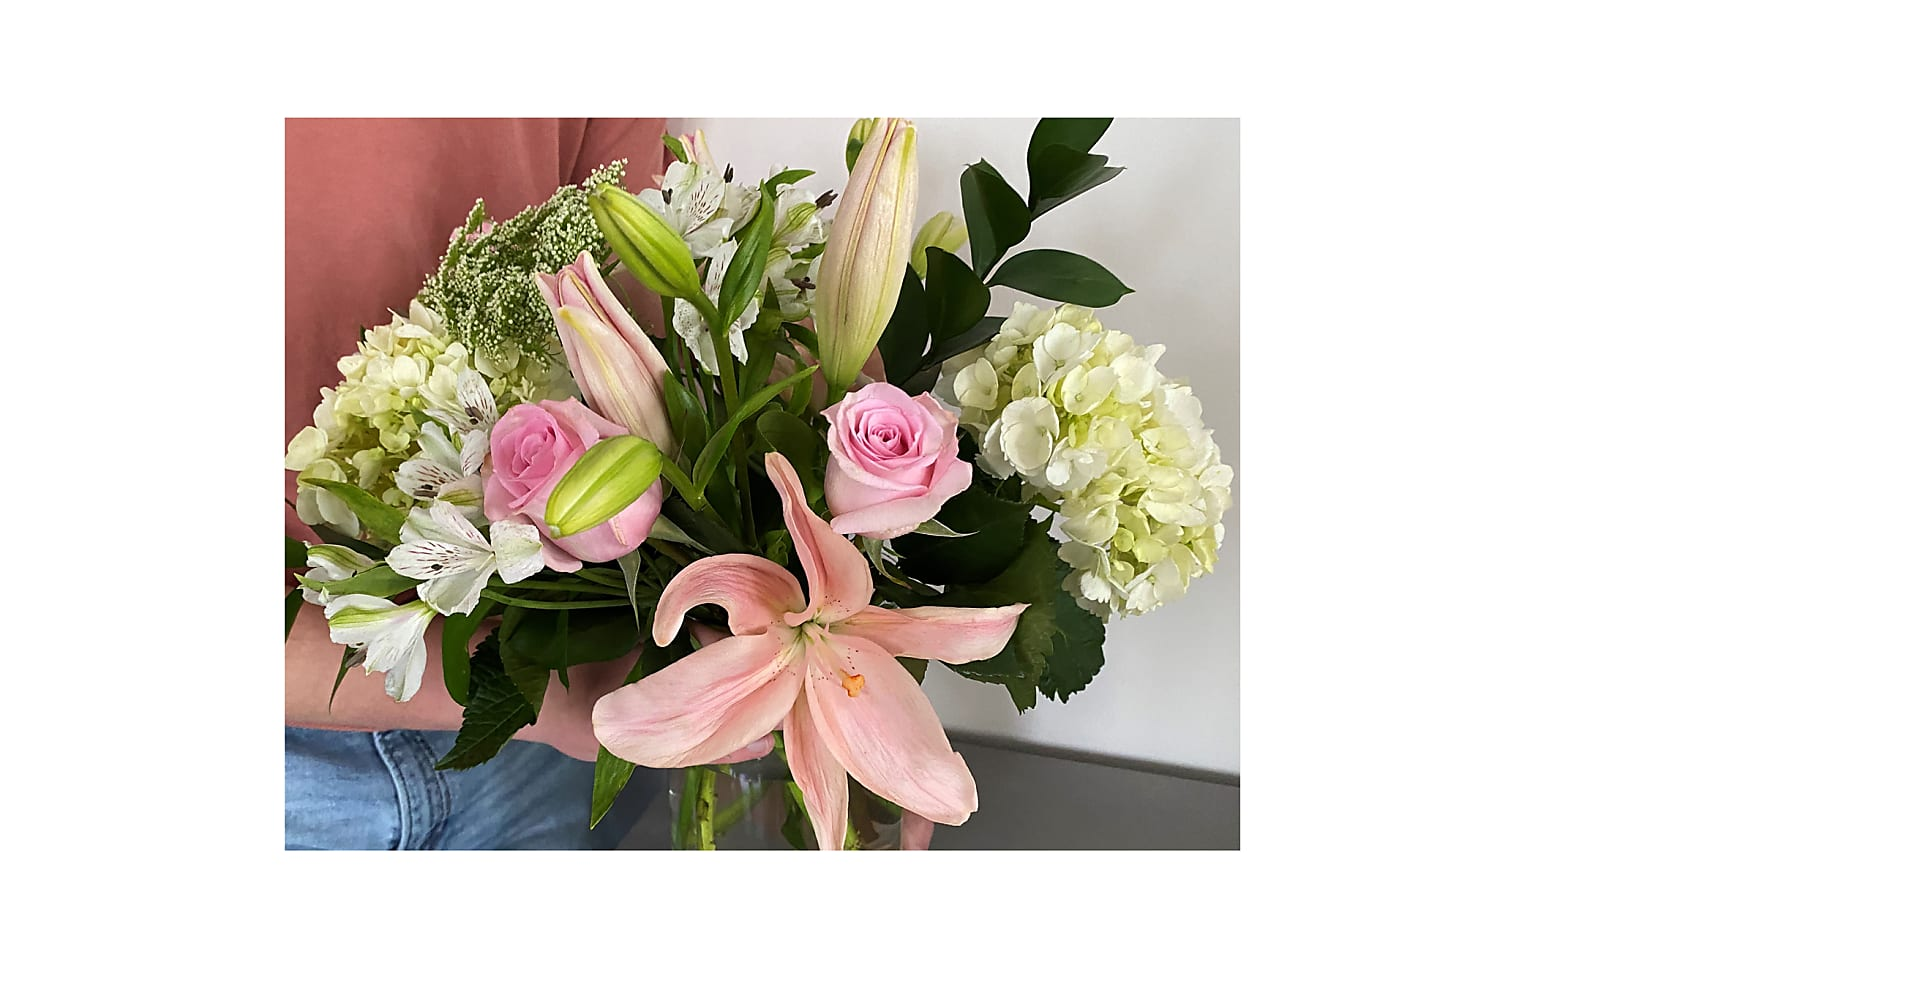 Summer Lovin' Bouquet with Vase - Image 2 Of 2